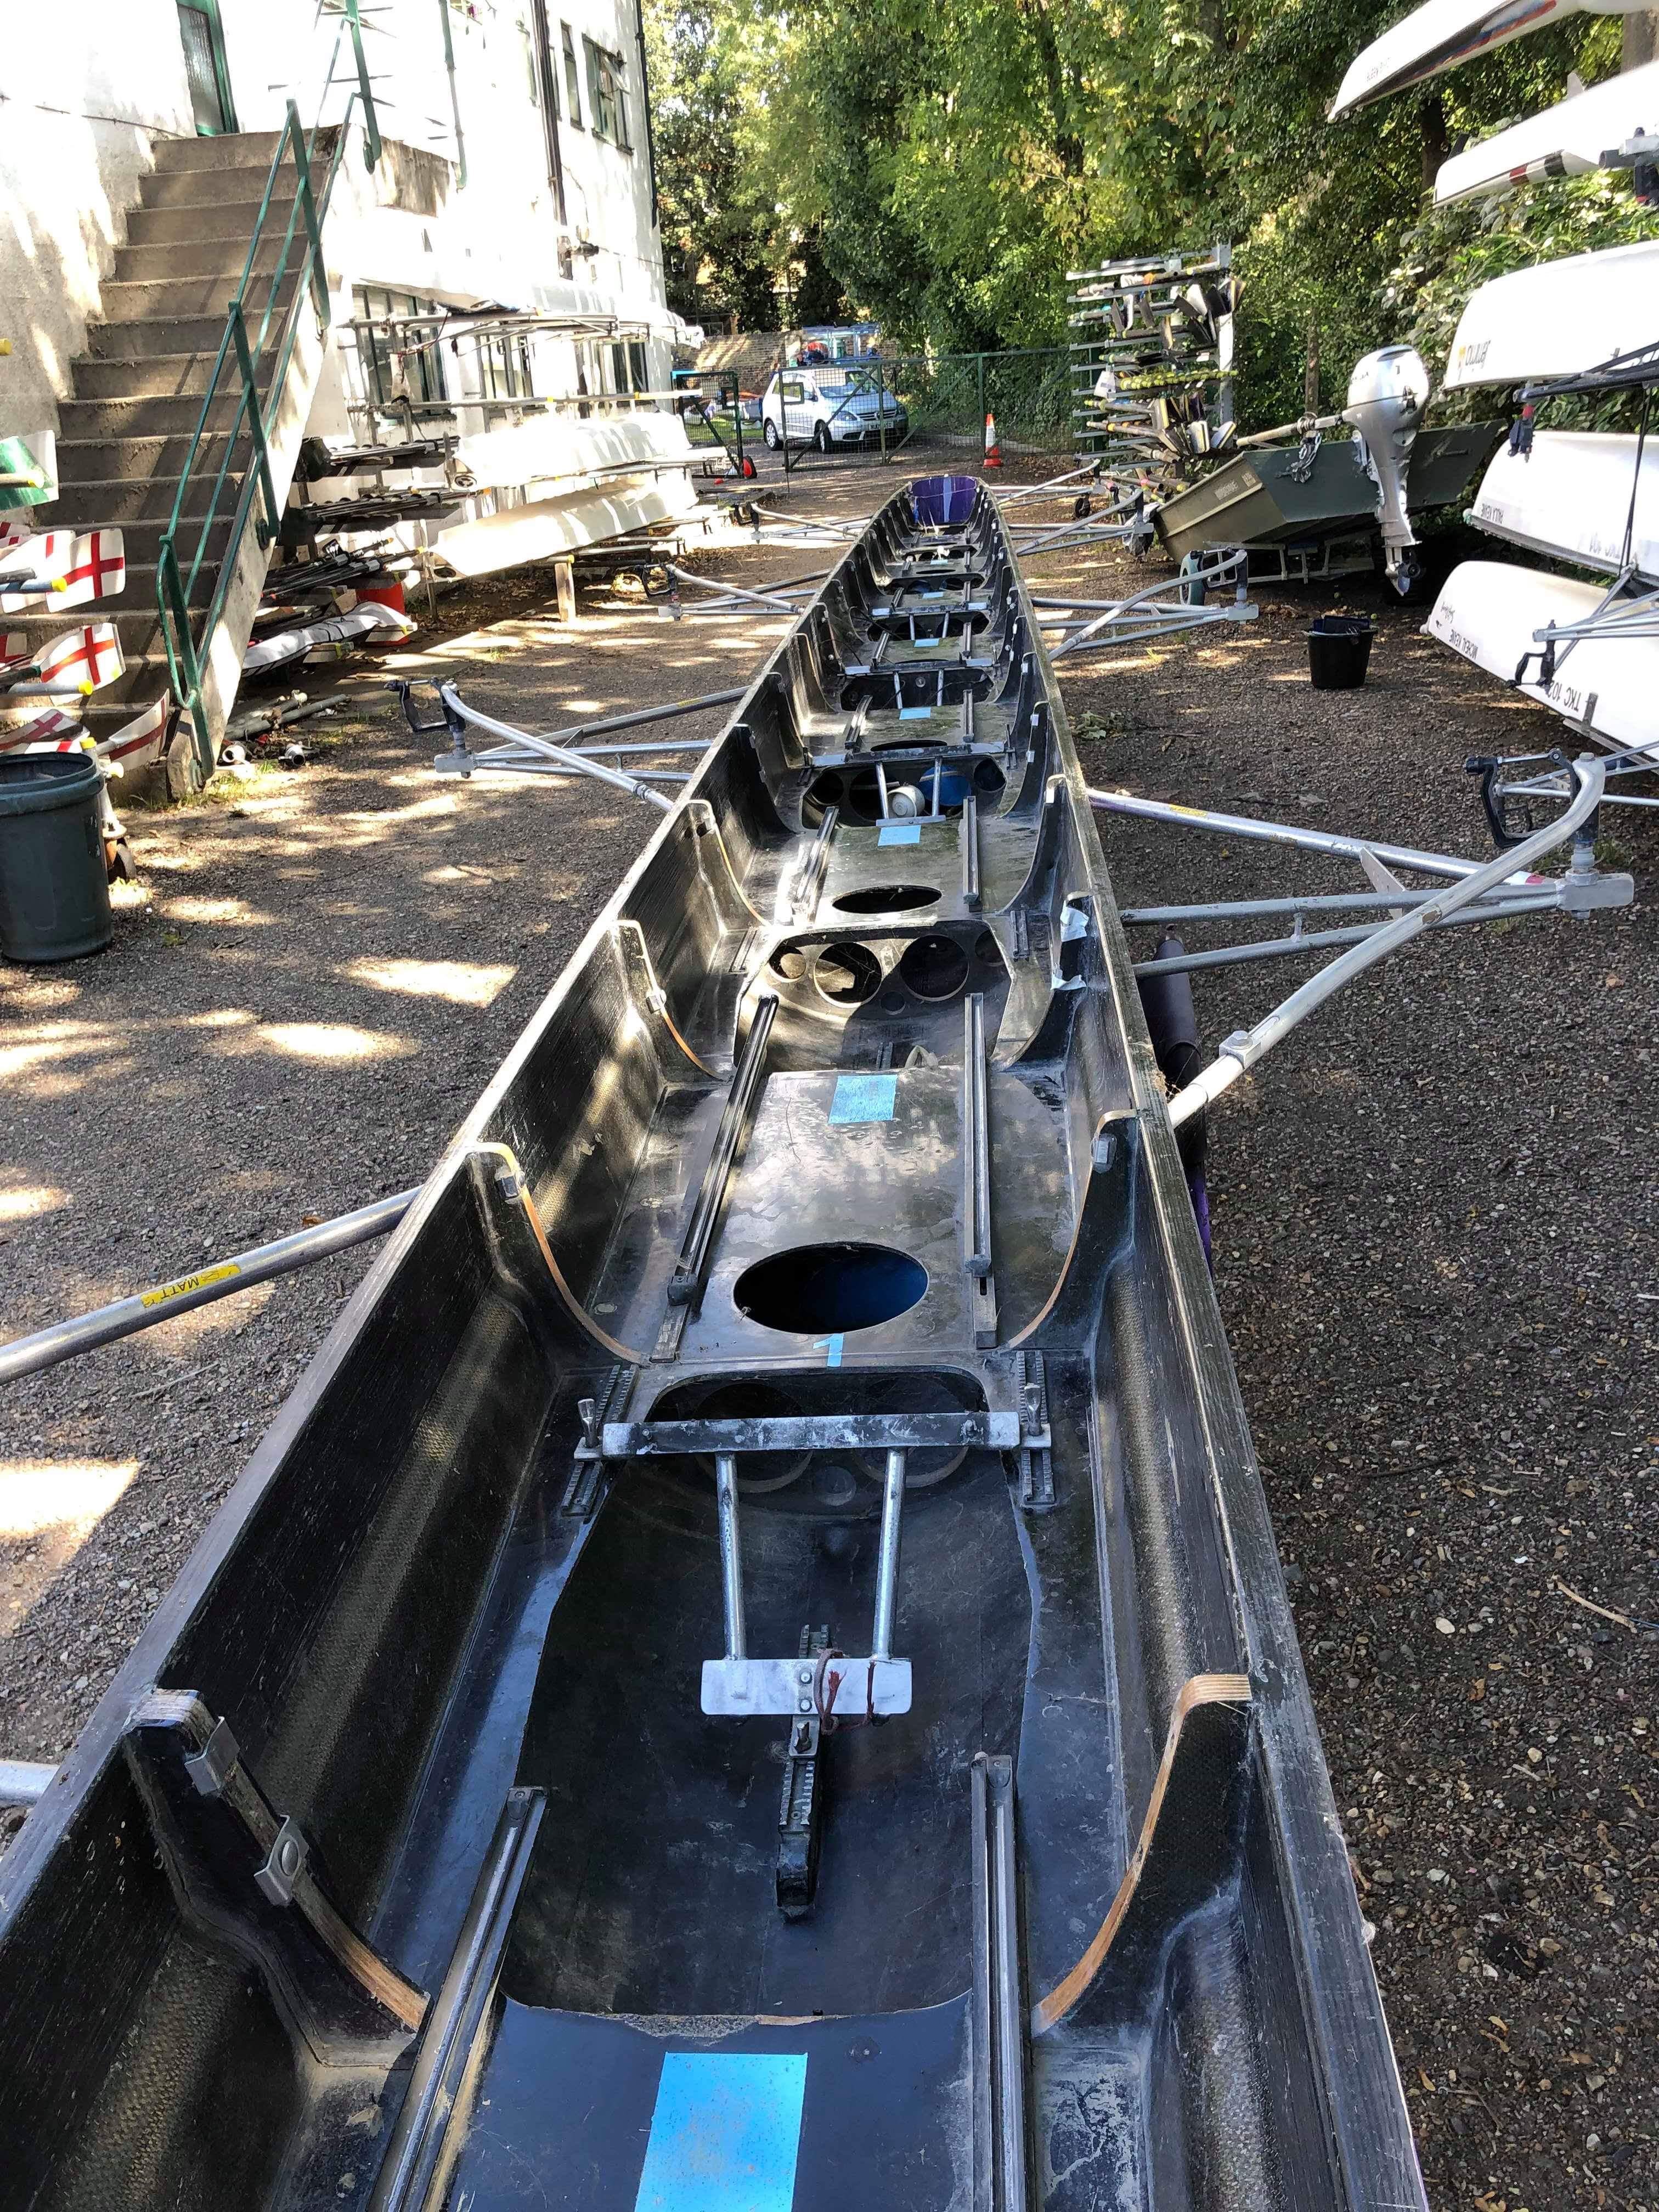 Eton 8+ Water tight, (includes everything apart from shoes and seats)